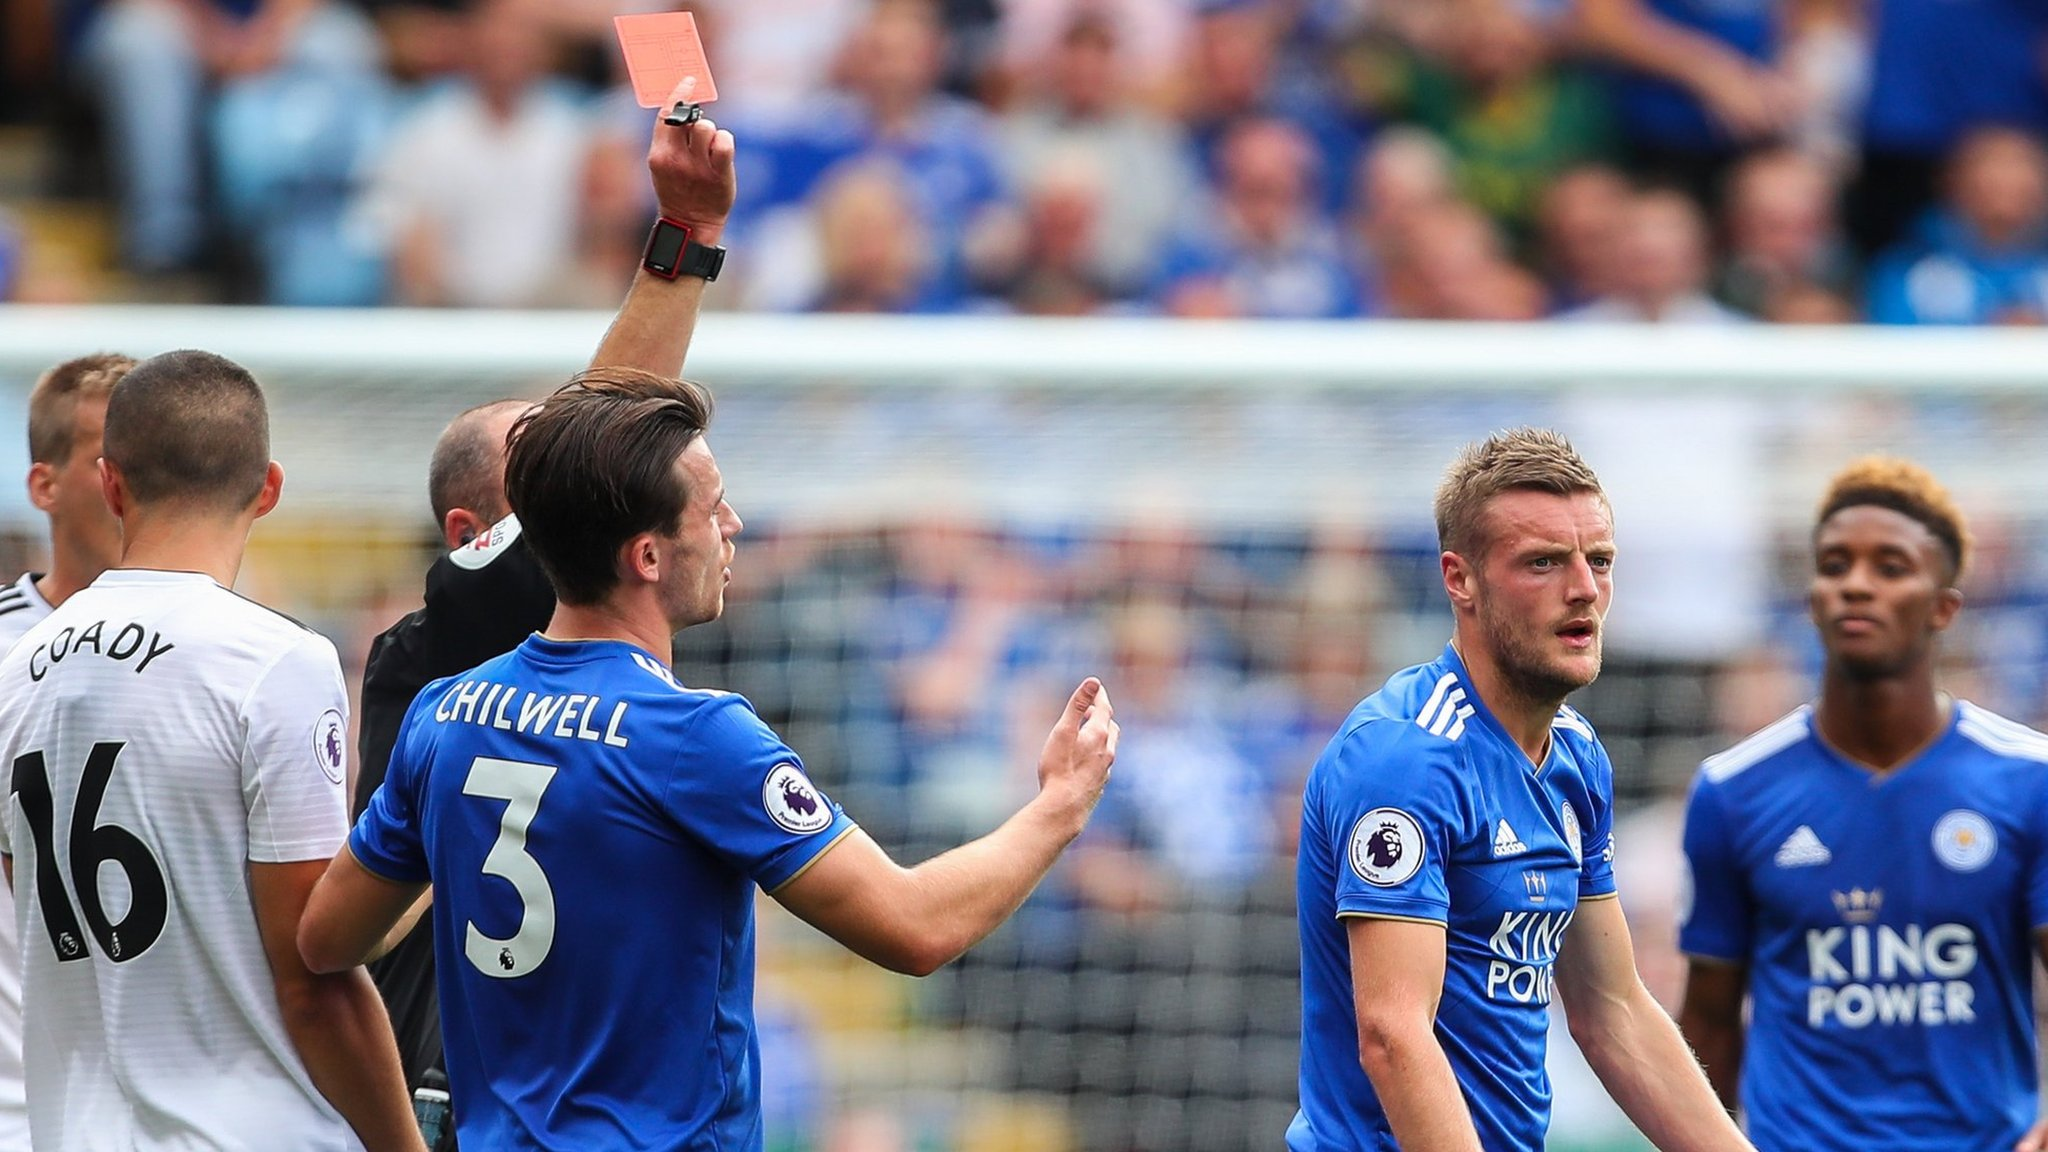 England striker Vardy sent off as Leicester beat Wolves